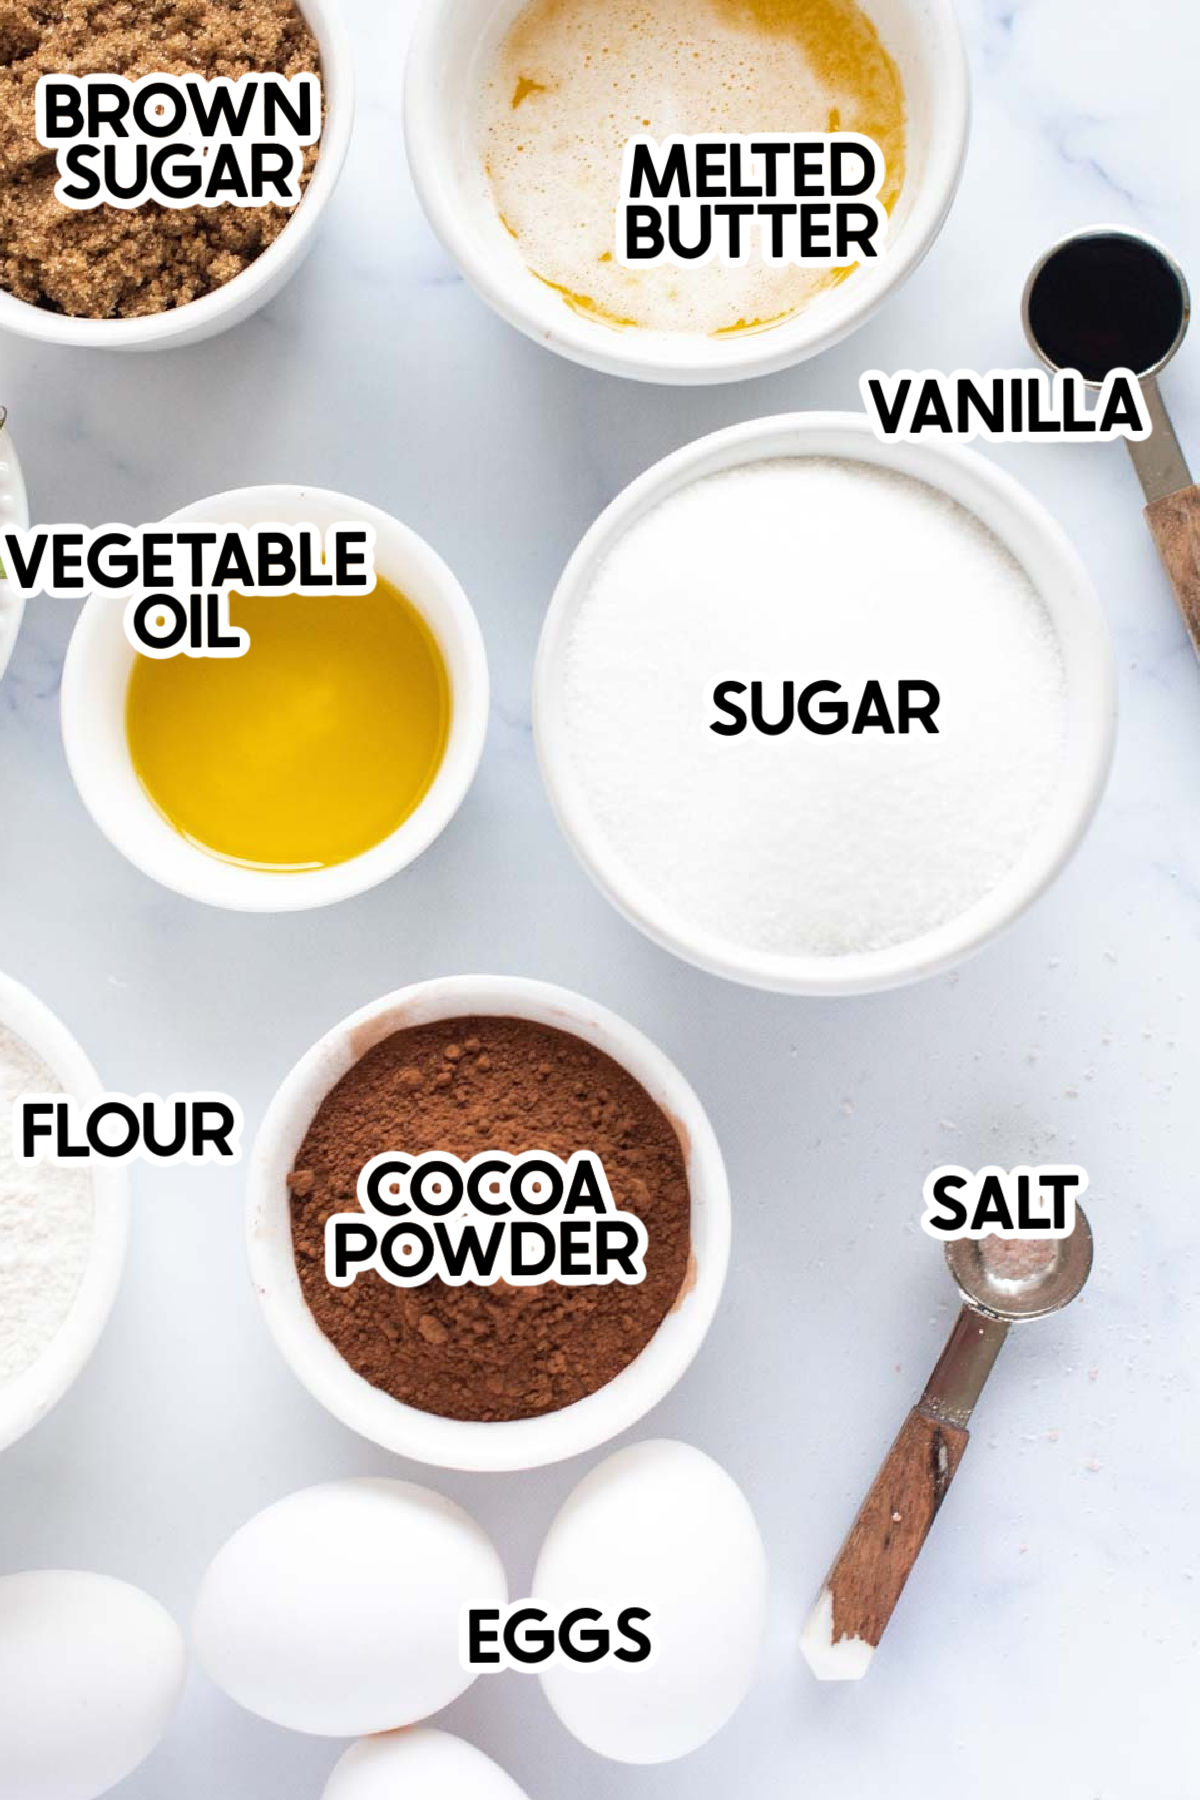 ingredients for homemade brownies with labels